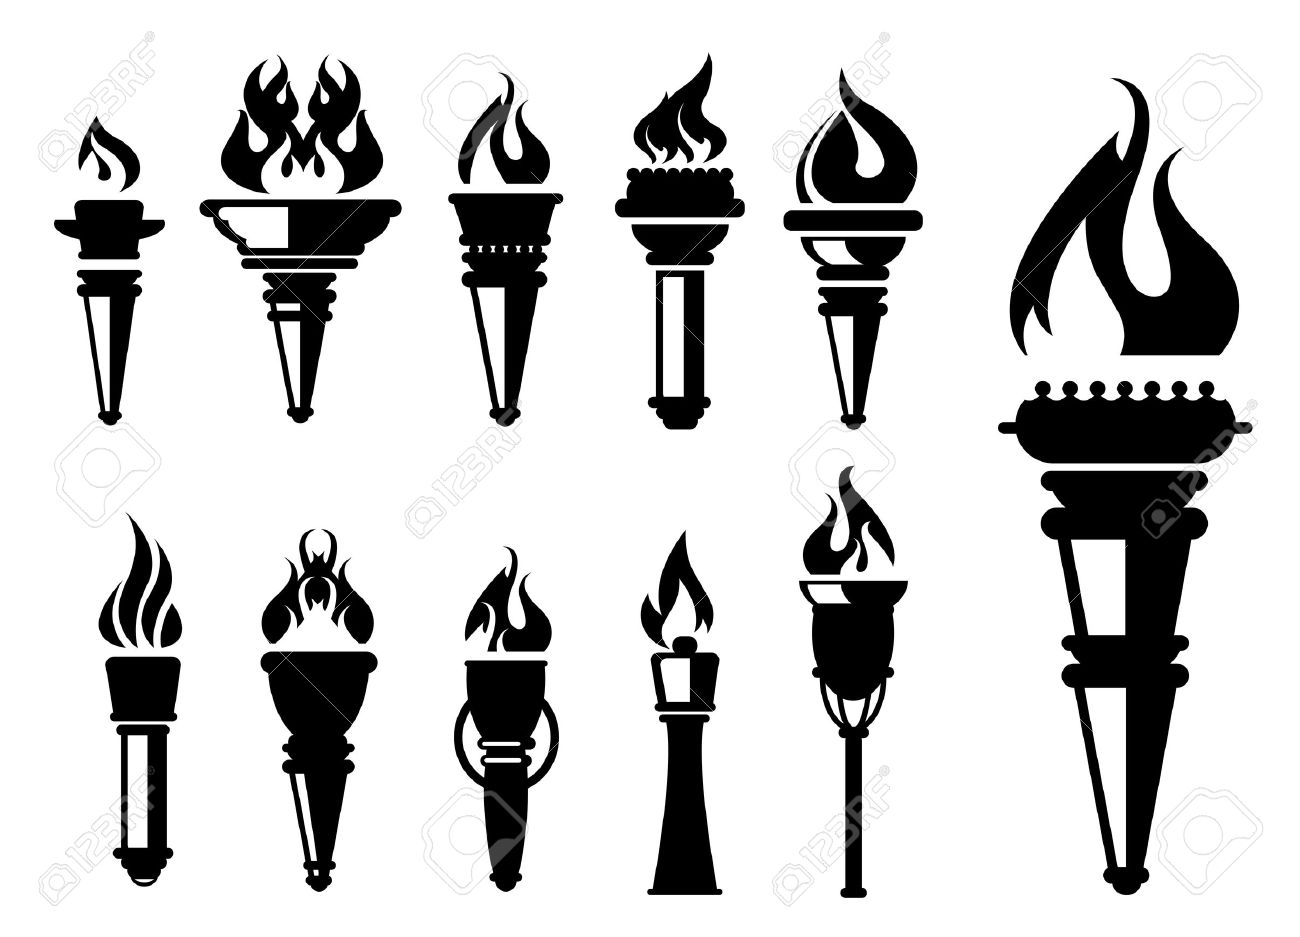 Torch Clipart Black And White 20 Free Cliparts